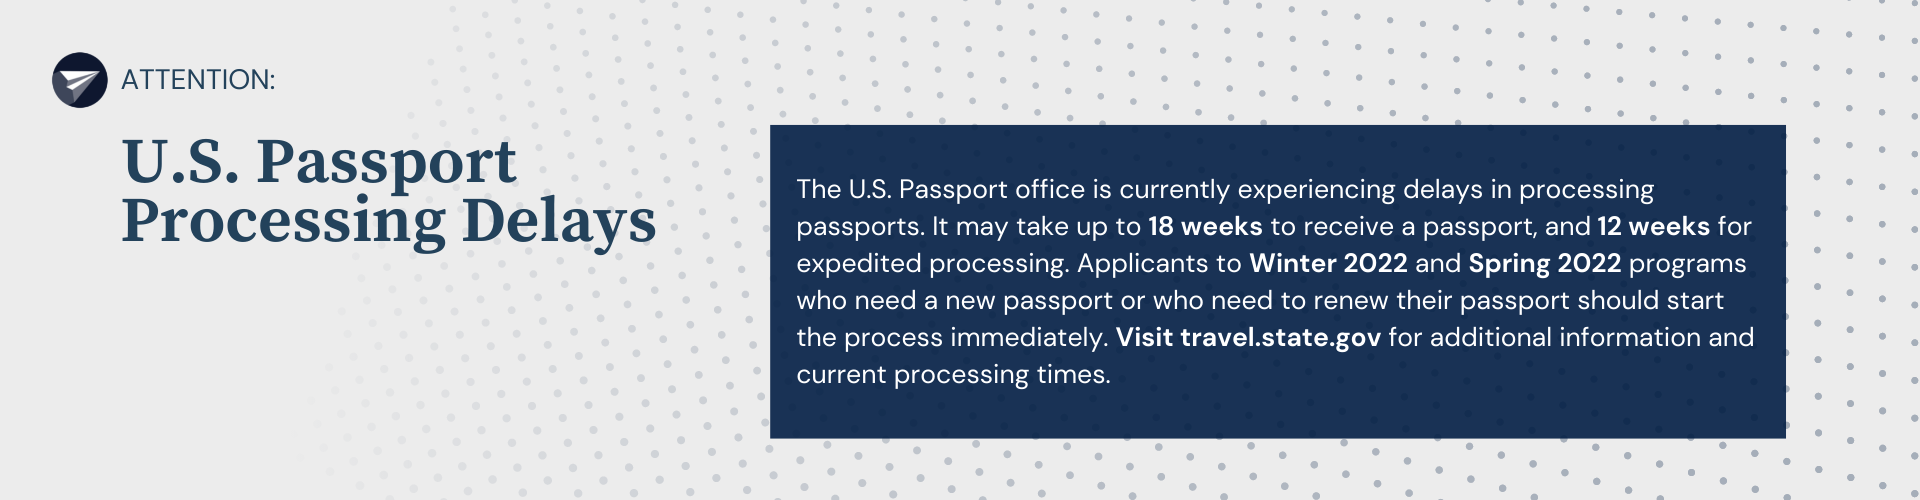 The U.S. Passport office is currently experiencing delays in processing passports. It may take up to 18 weeks to receive a passport, and 12 weeks for expedited processing. Applicants to Winter 2022 and Spring 2022 programs who need a new passport or who need to renew their passport should start the process immediately. Visit travel.state.gov for additional information and current processing times.